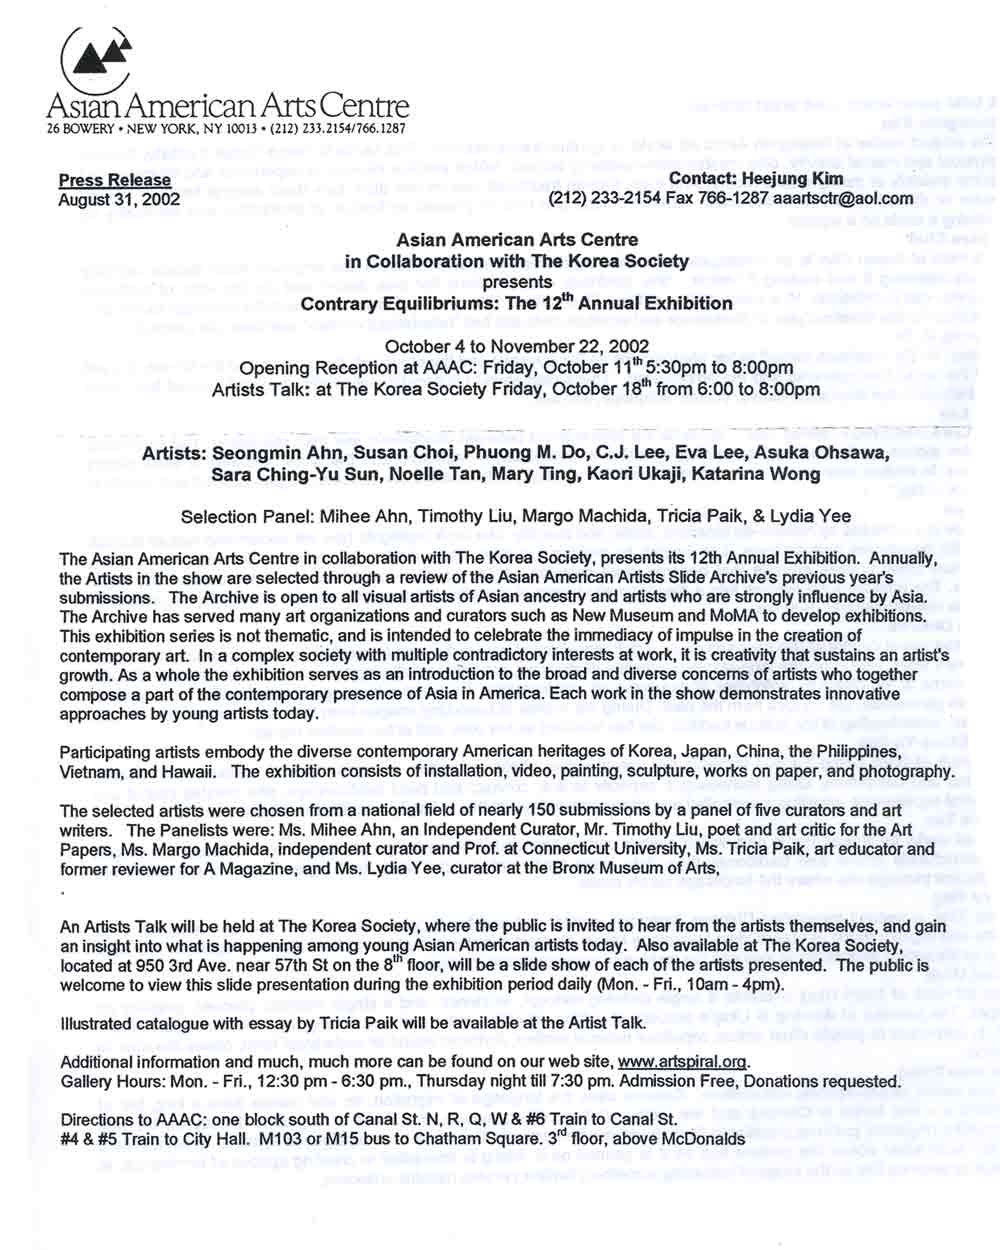 Contrary Equilibriums press release, pg 1